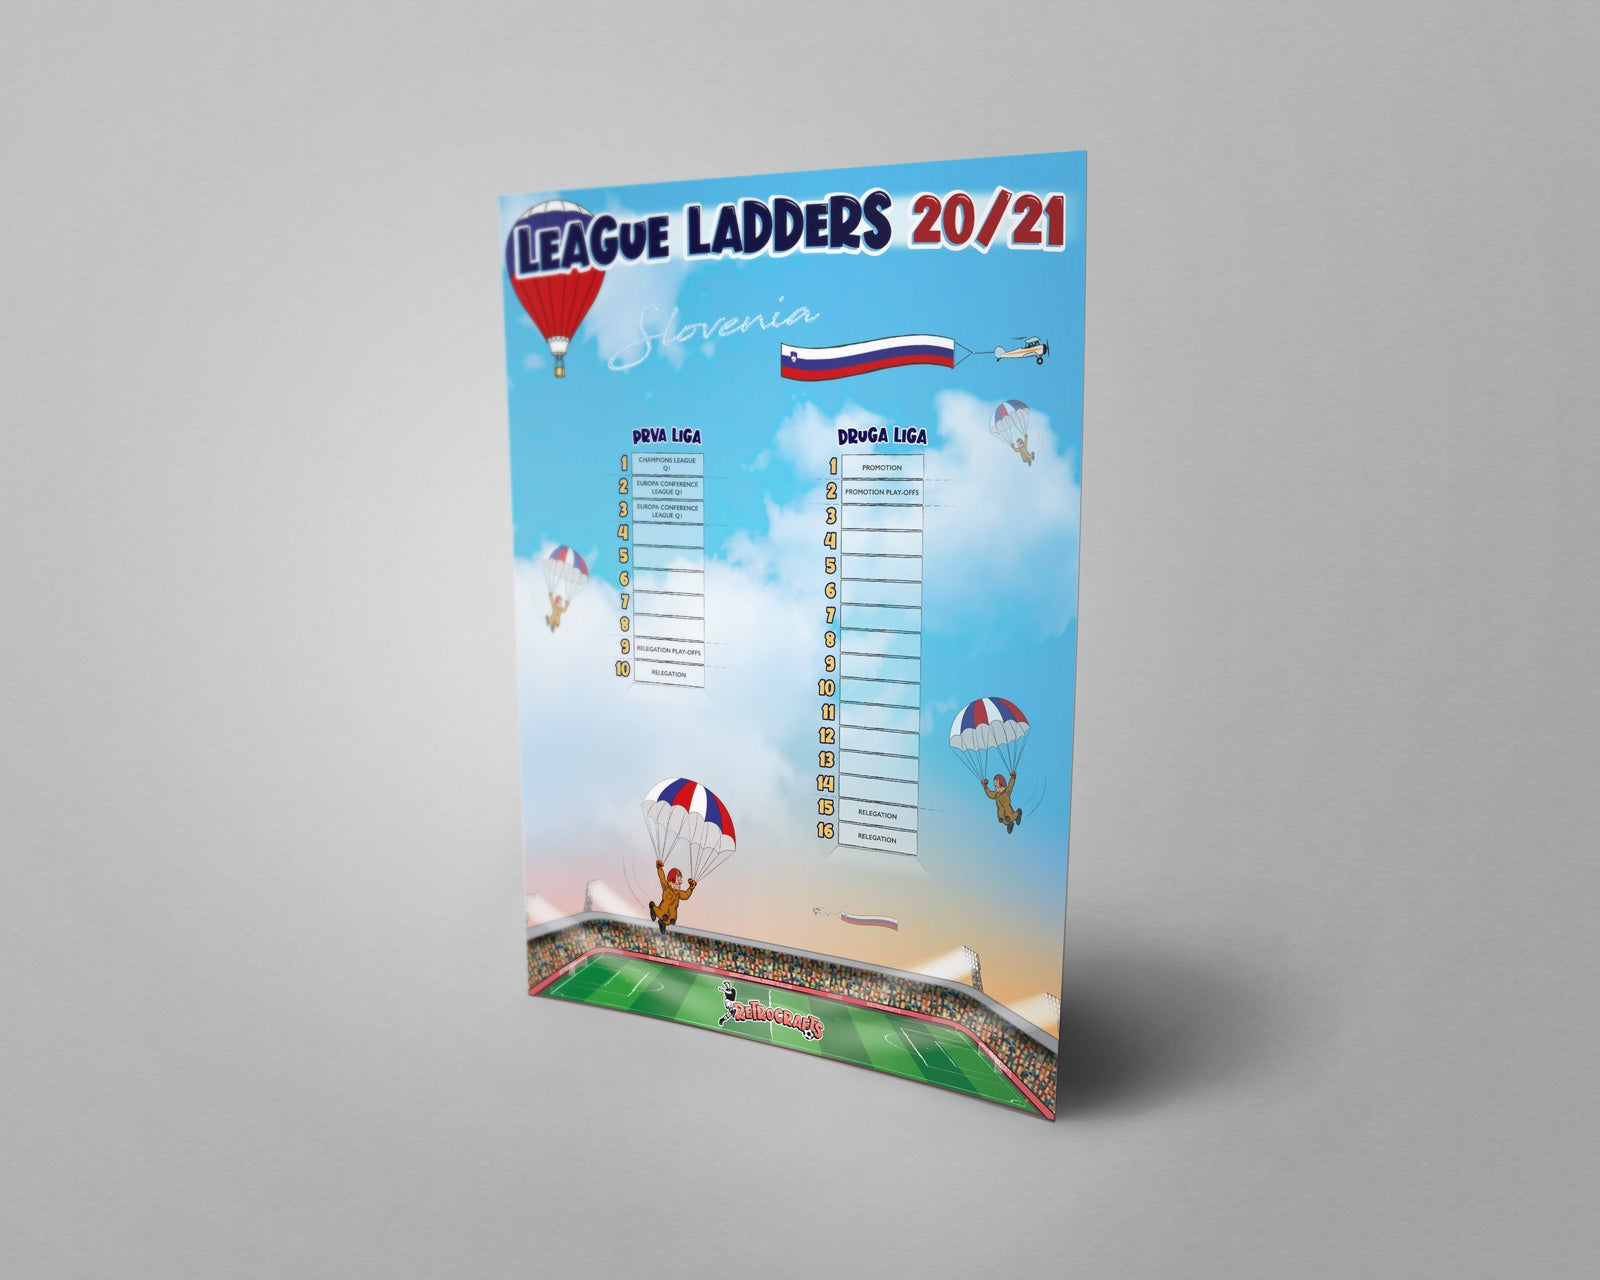 Slovenia Football League Tiers 1 & 2 2020/21 Season League Ladders